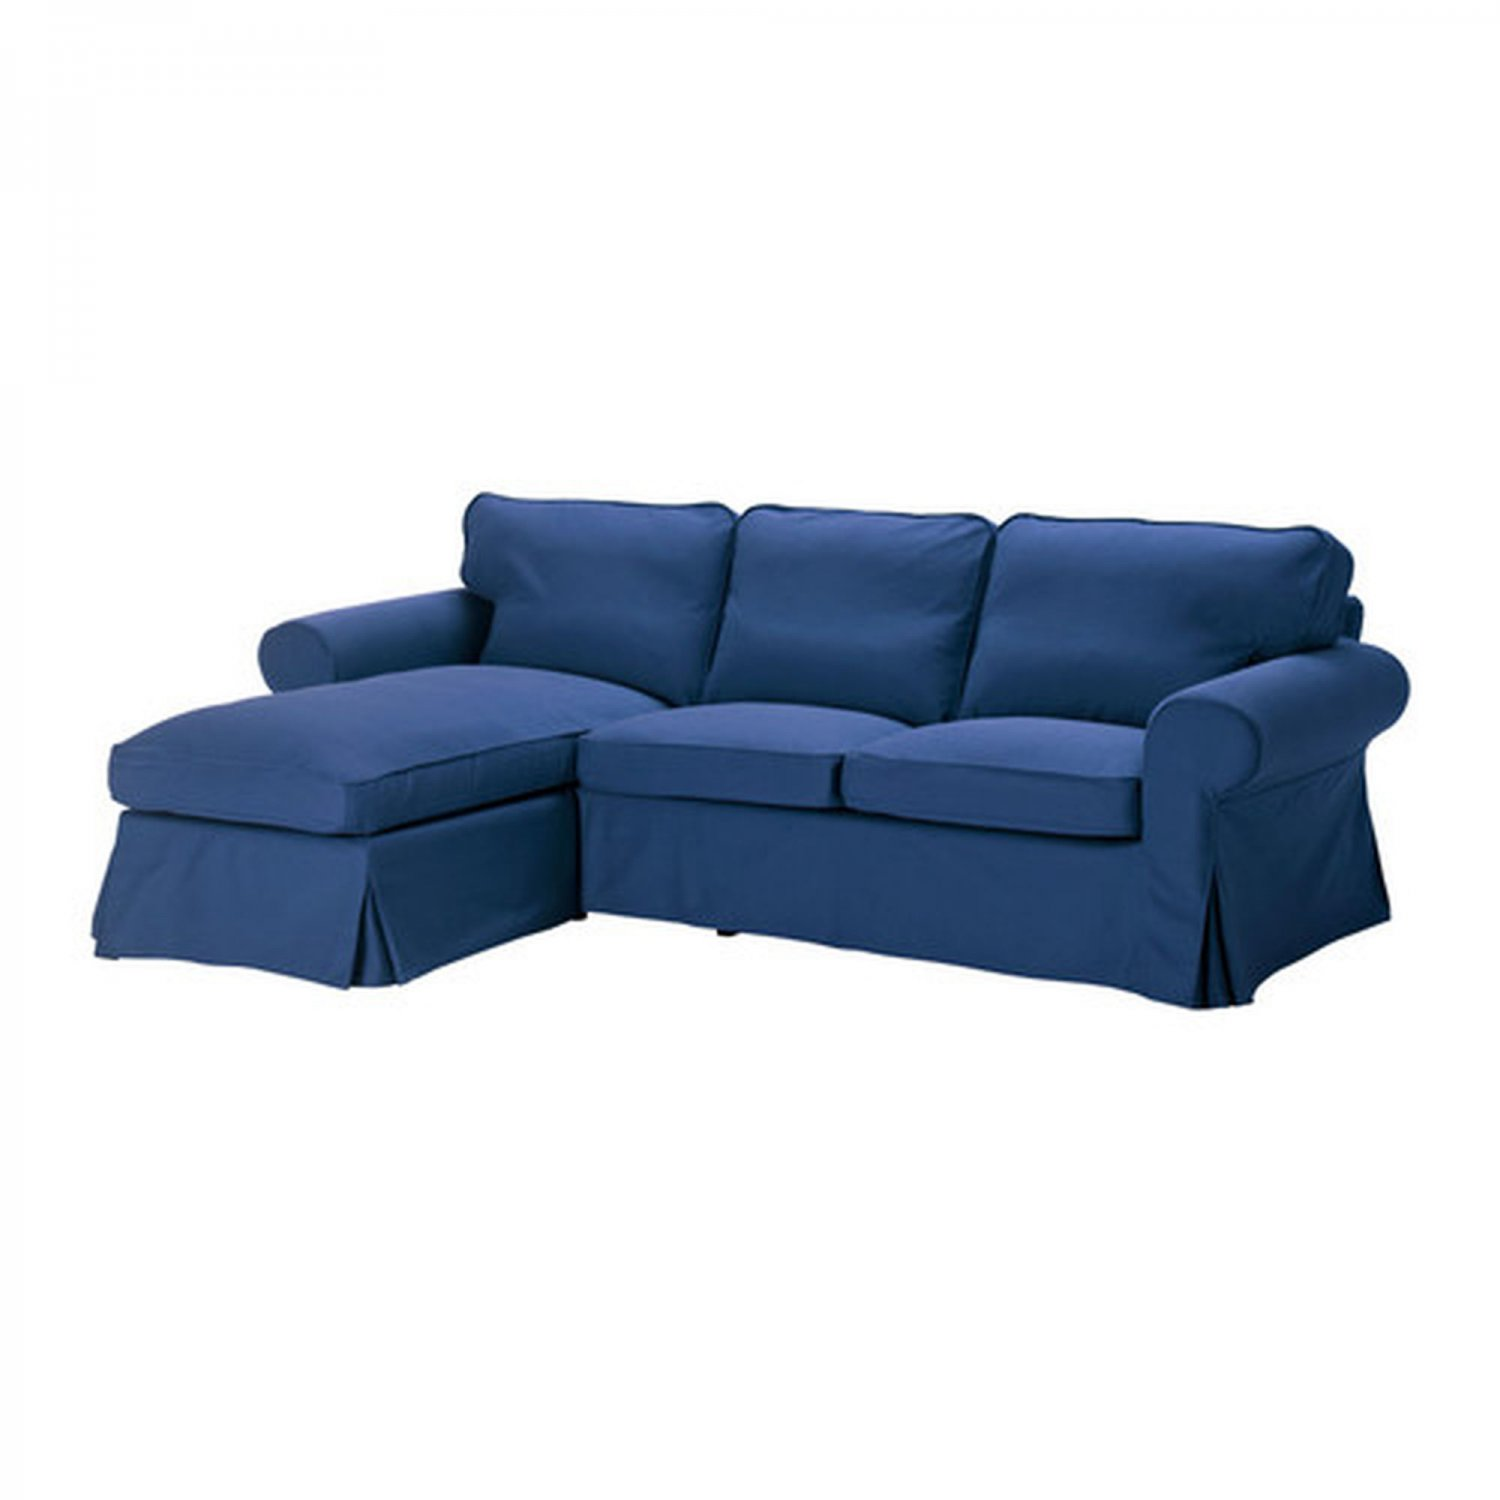 Ikea ektorp loveseat with chaise lounge cover slipcover for Chaise longue ikea